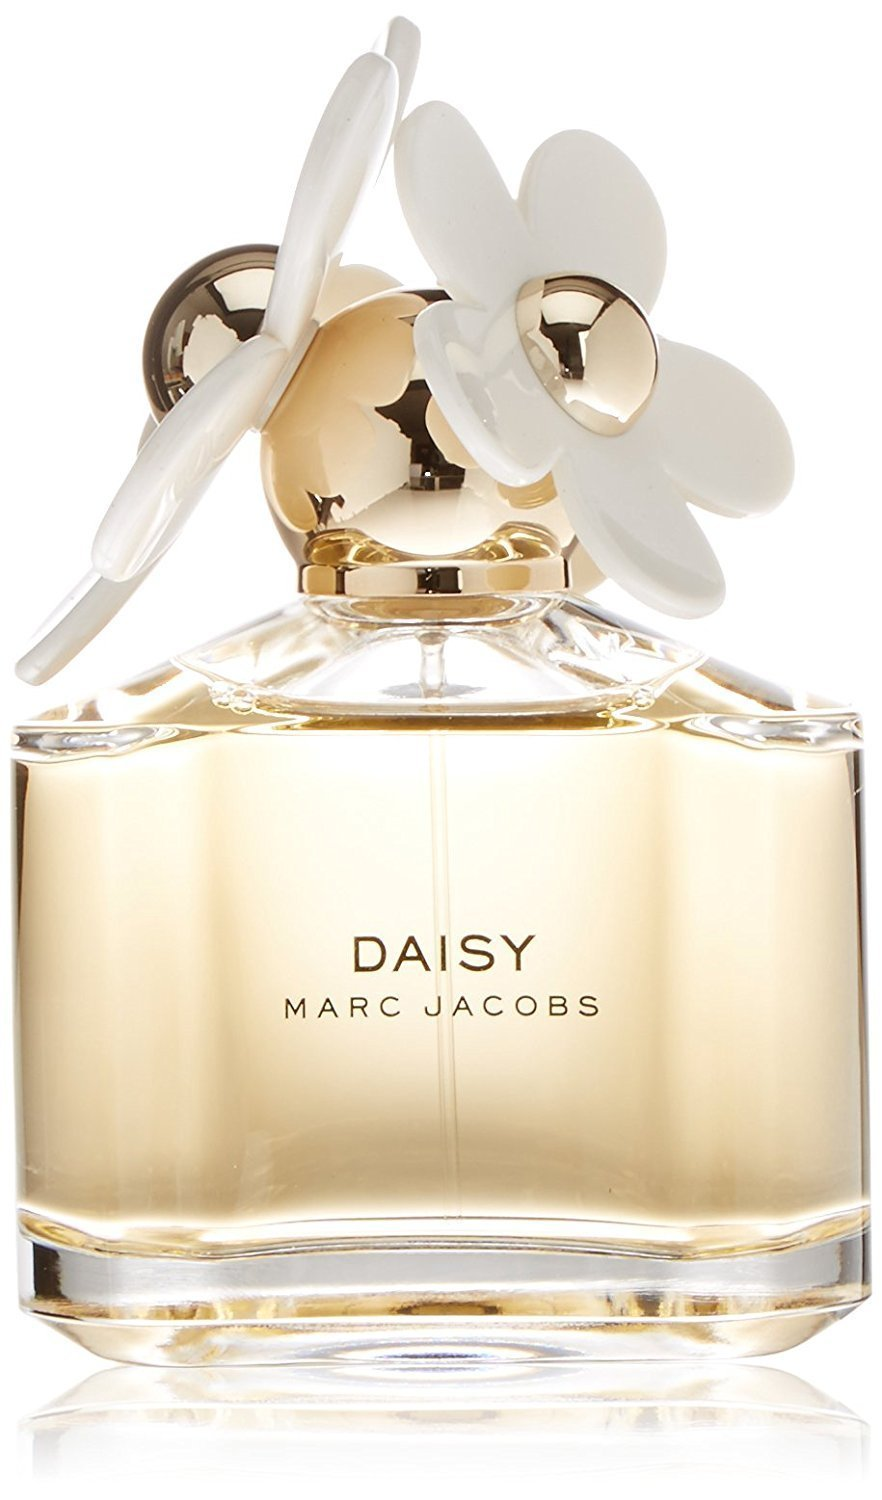 9790789203 Marc Jacobs Daisy Eau de Toilette Spray, 3.4 Ounce 612Q1VGqjcL